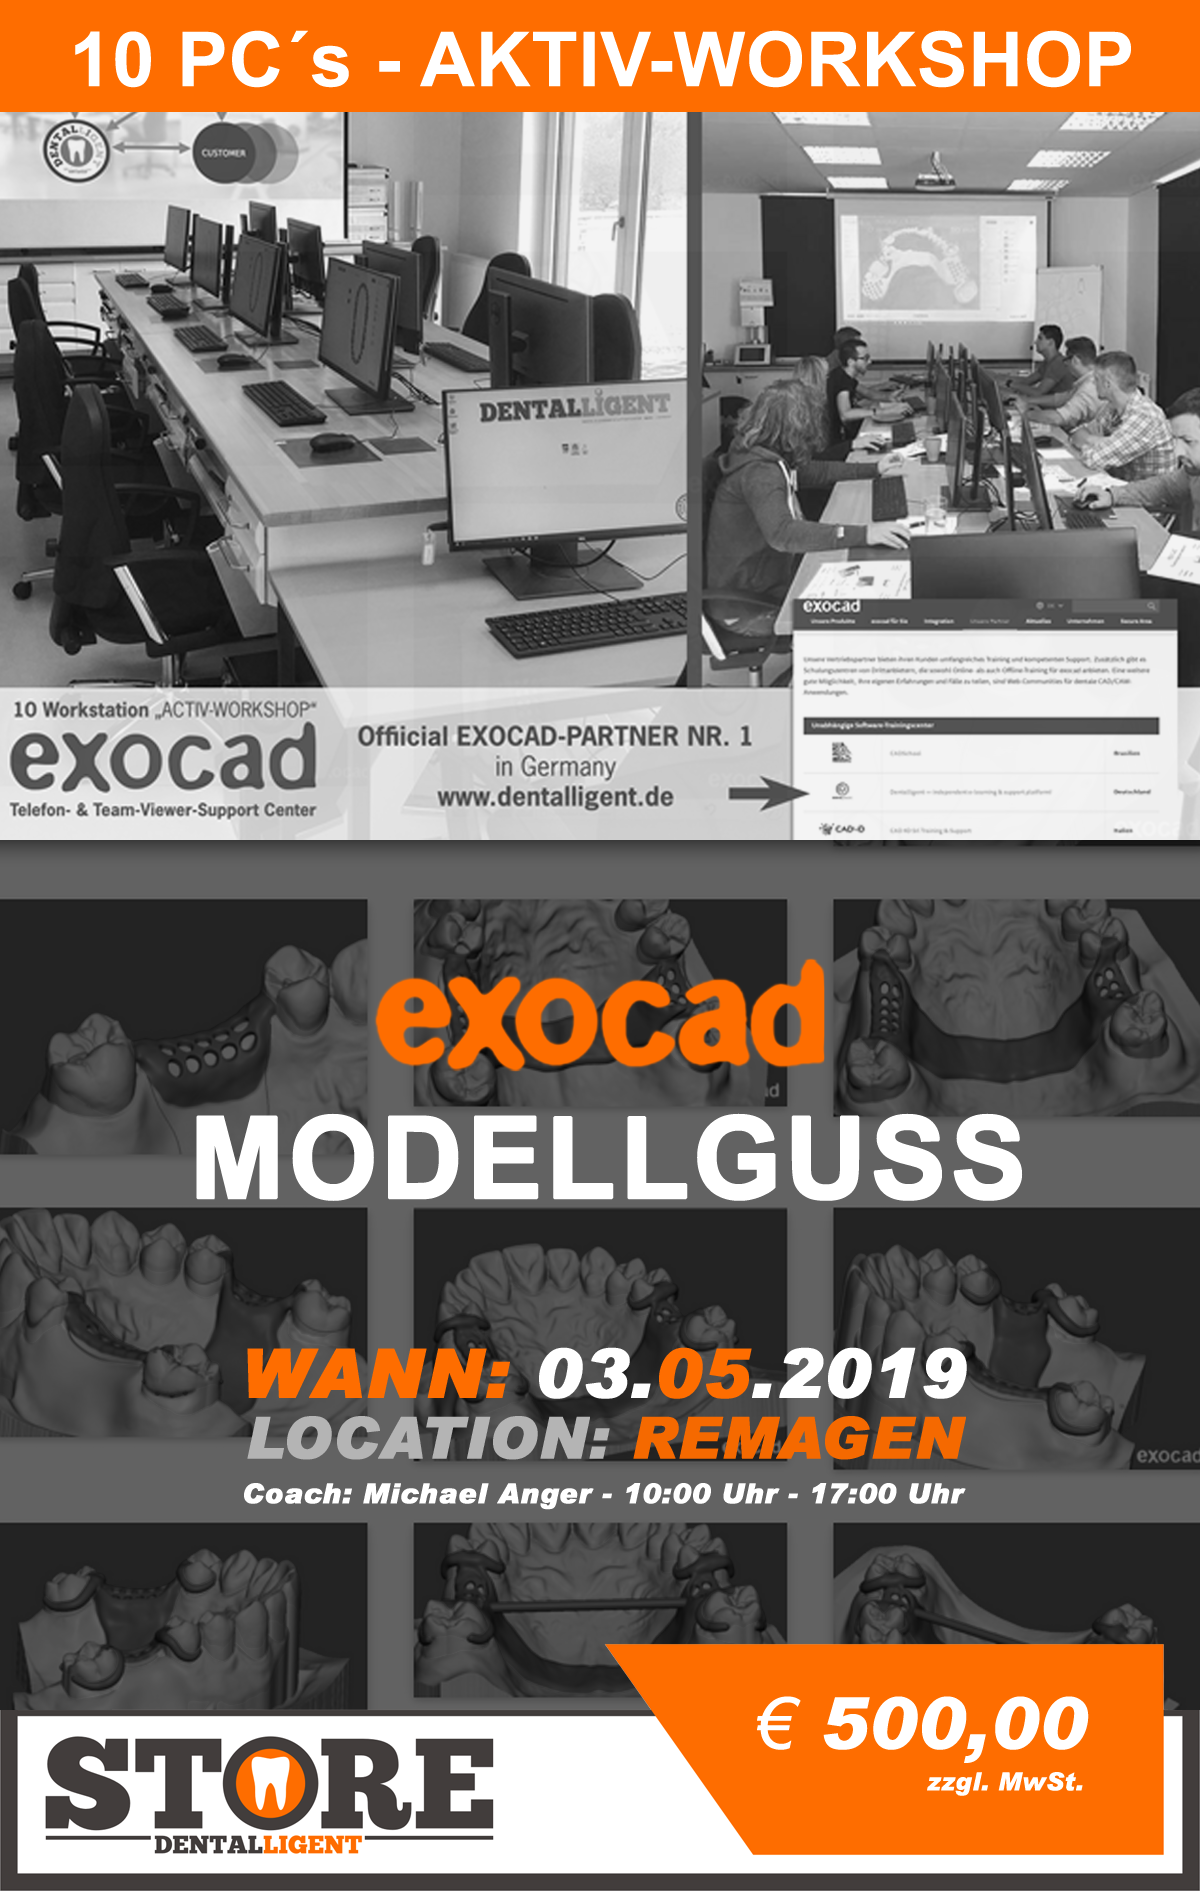 Exocad-Modellguss  by Michael Anger - 10 PC´s AKTIV WORKSHOP - in REMAGEN